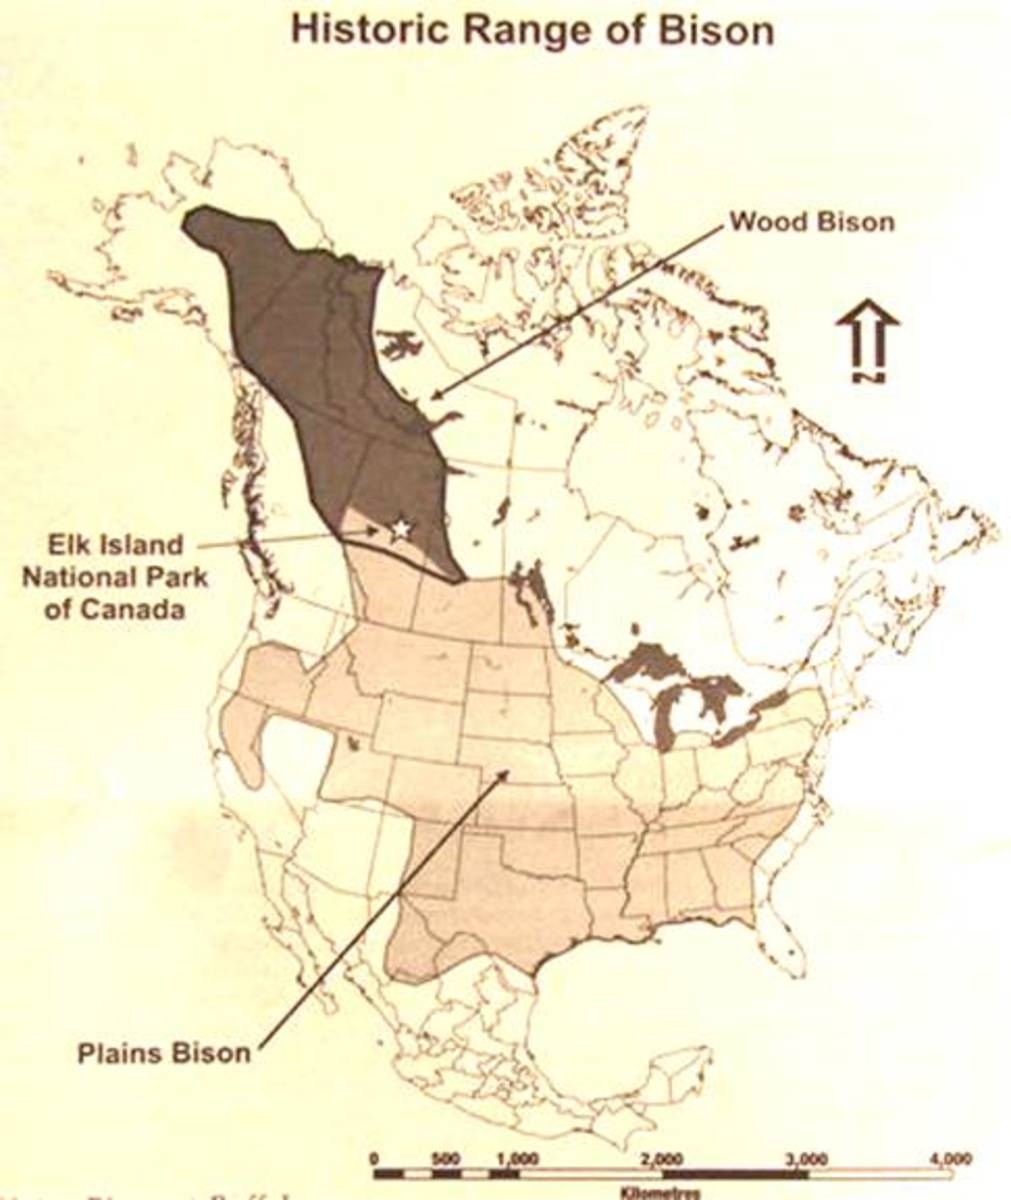 The Boundaries of where North American Bison roamed historically